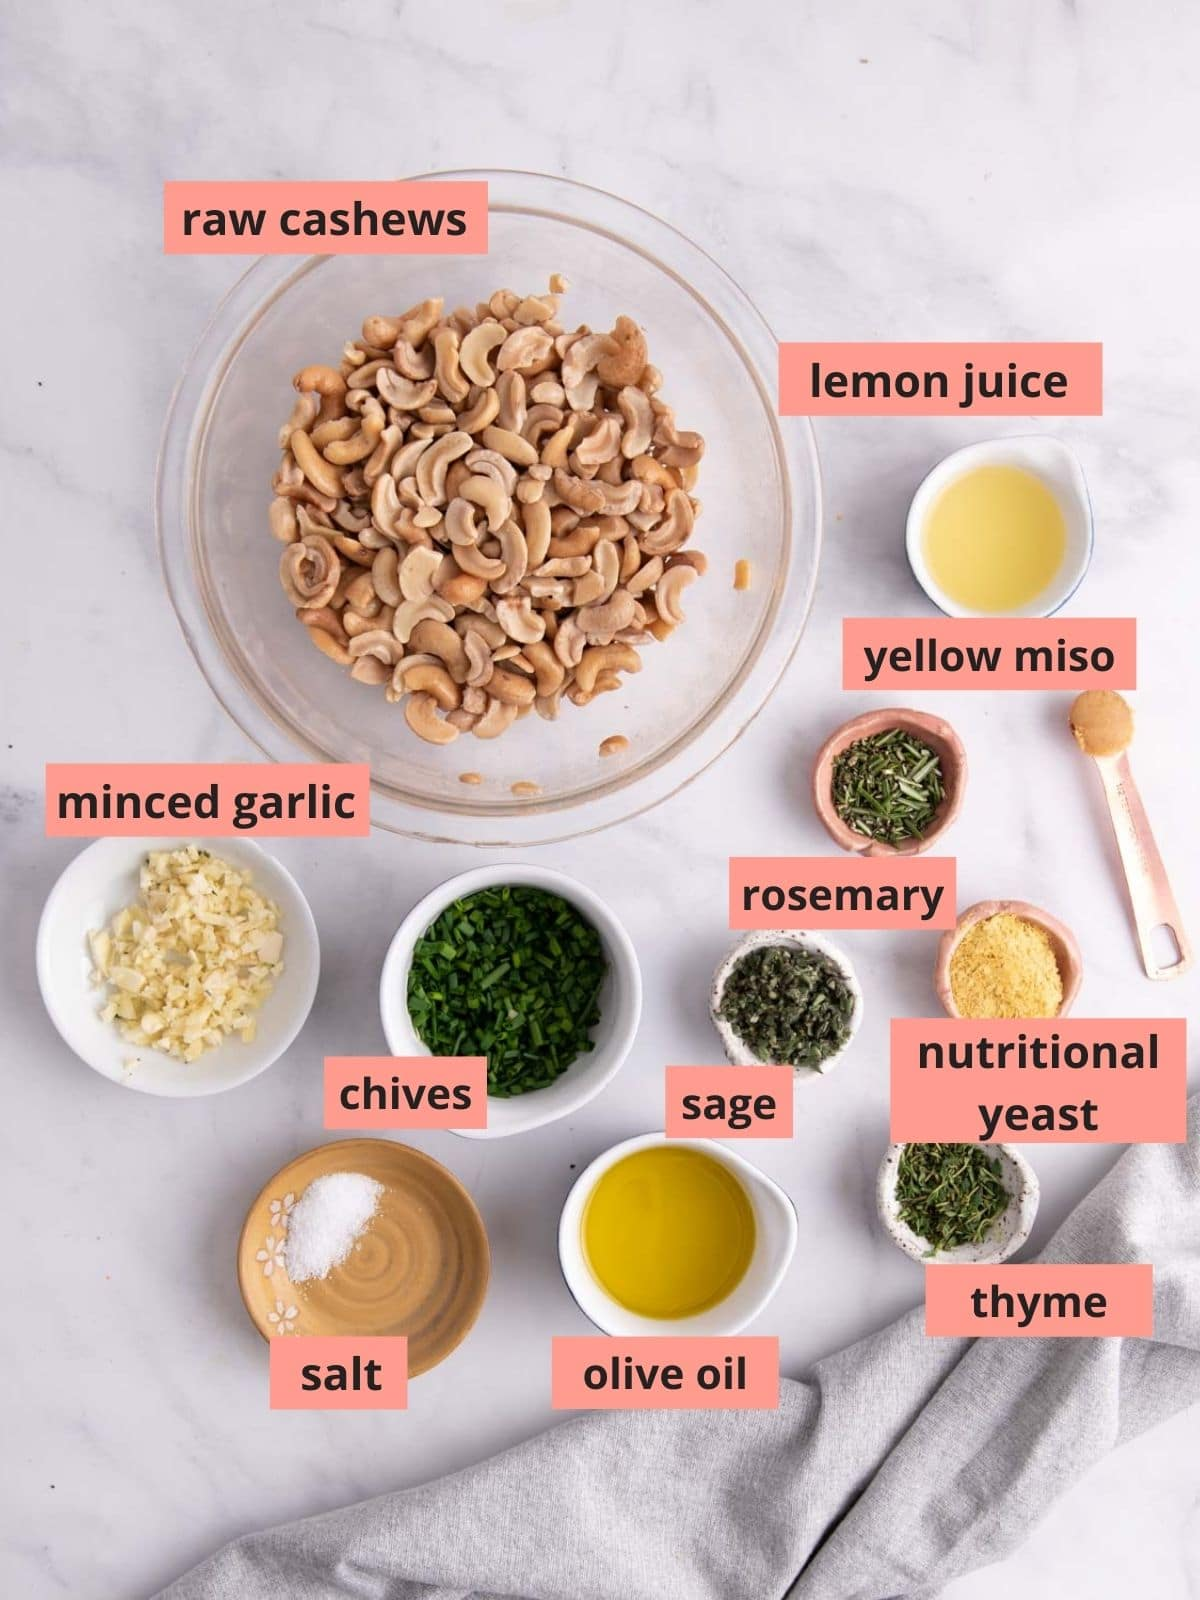 Labeled ingredients used to make cashew cream cheese